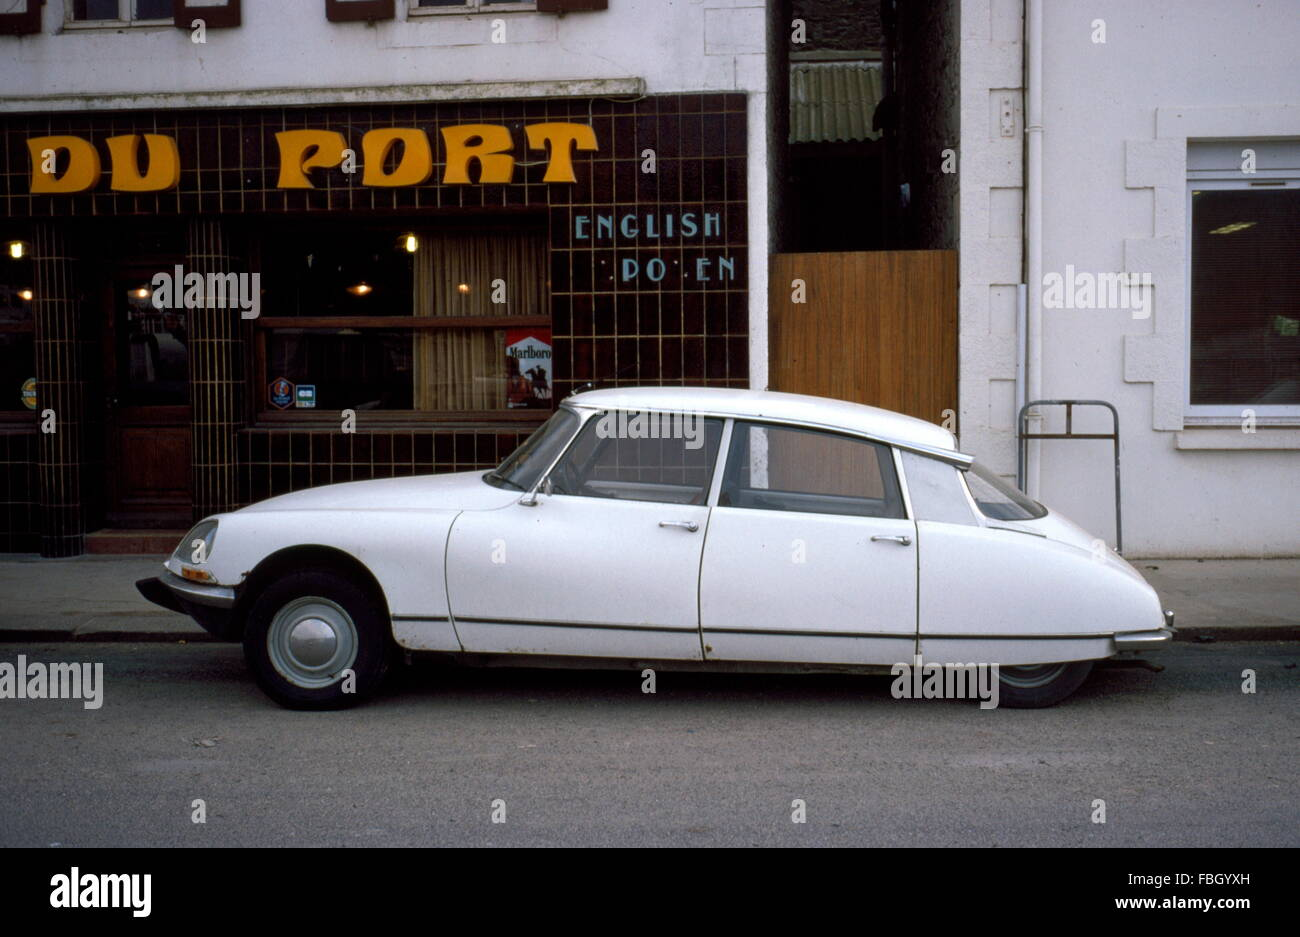 AJAXNETPHOTO - ST.BRIEUC, FRANCE - FRENCH MOTORING ICON - CITROEN DS SALOON PARKED OUTSIDE A CAFE. PHOTO:JONATHAN - Stock Image